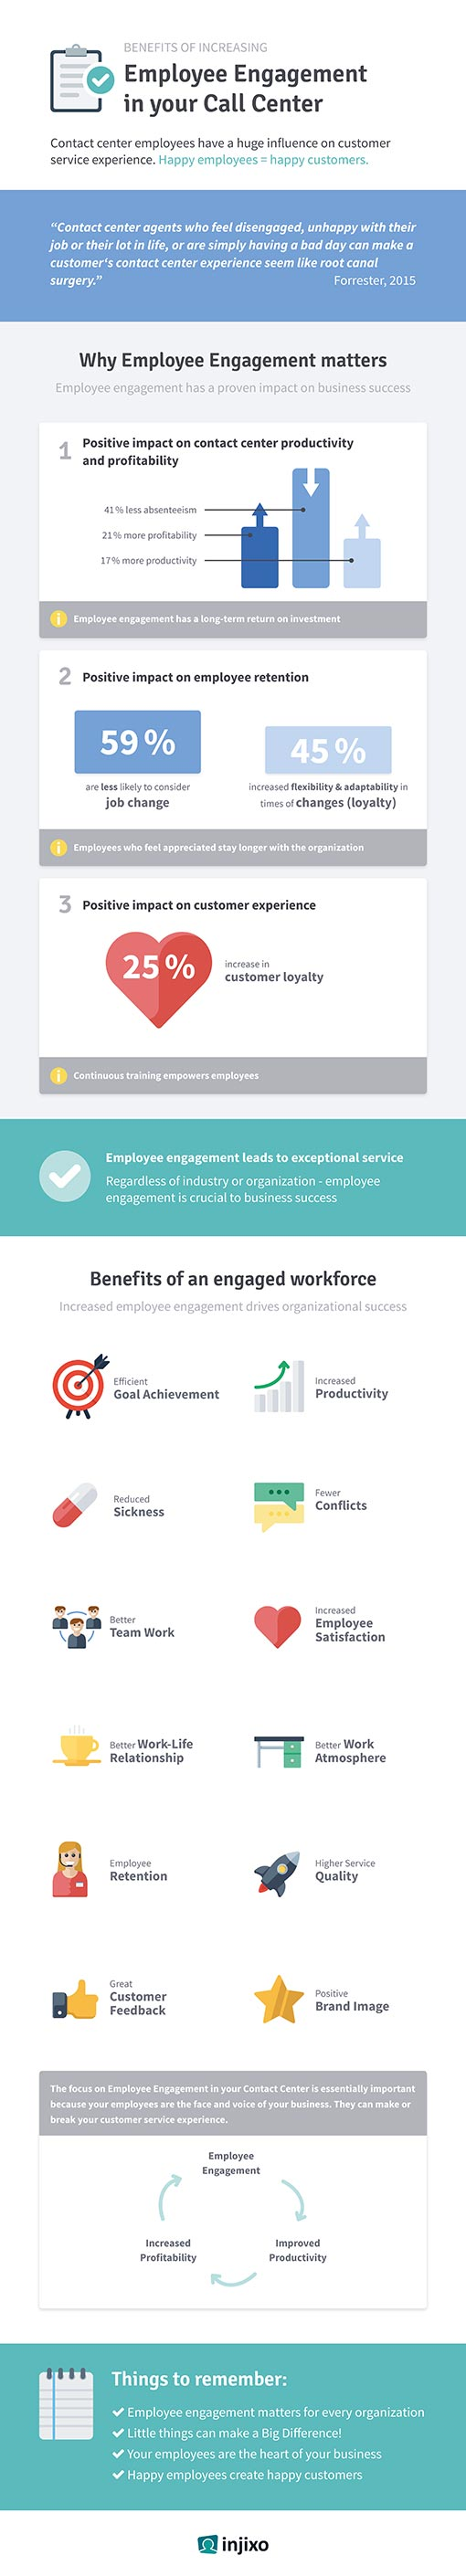 Follow the link to see full-size infographic